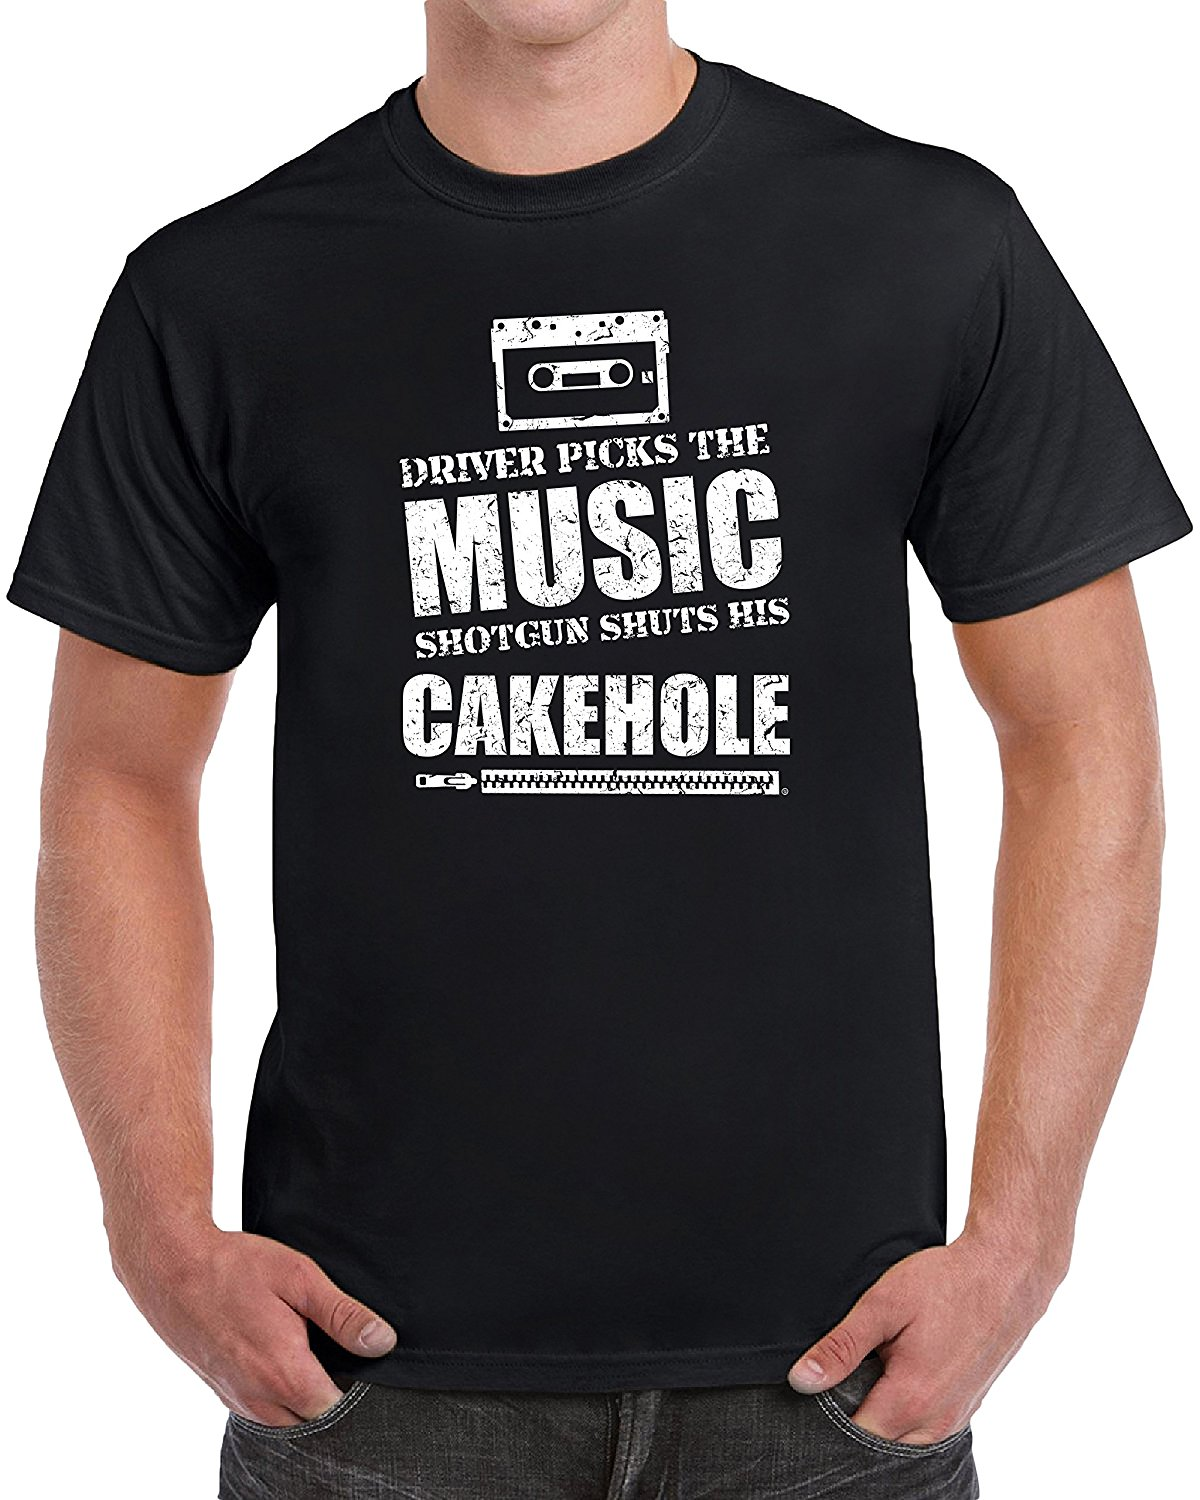 tees geek Driver Picks The Music Shotgun Shuts His Cakehole Funny Novelty Tshirt